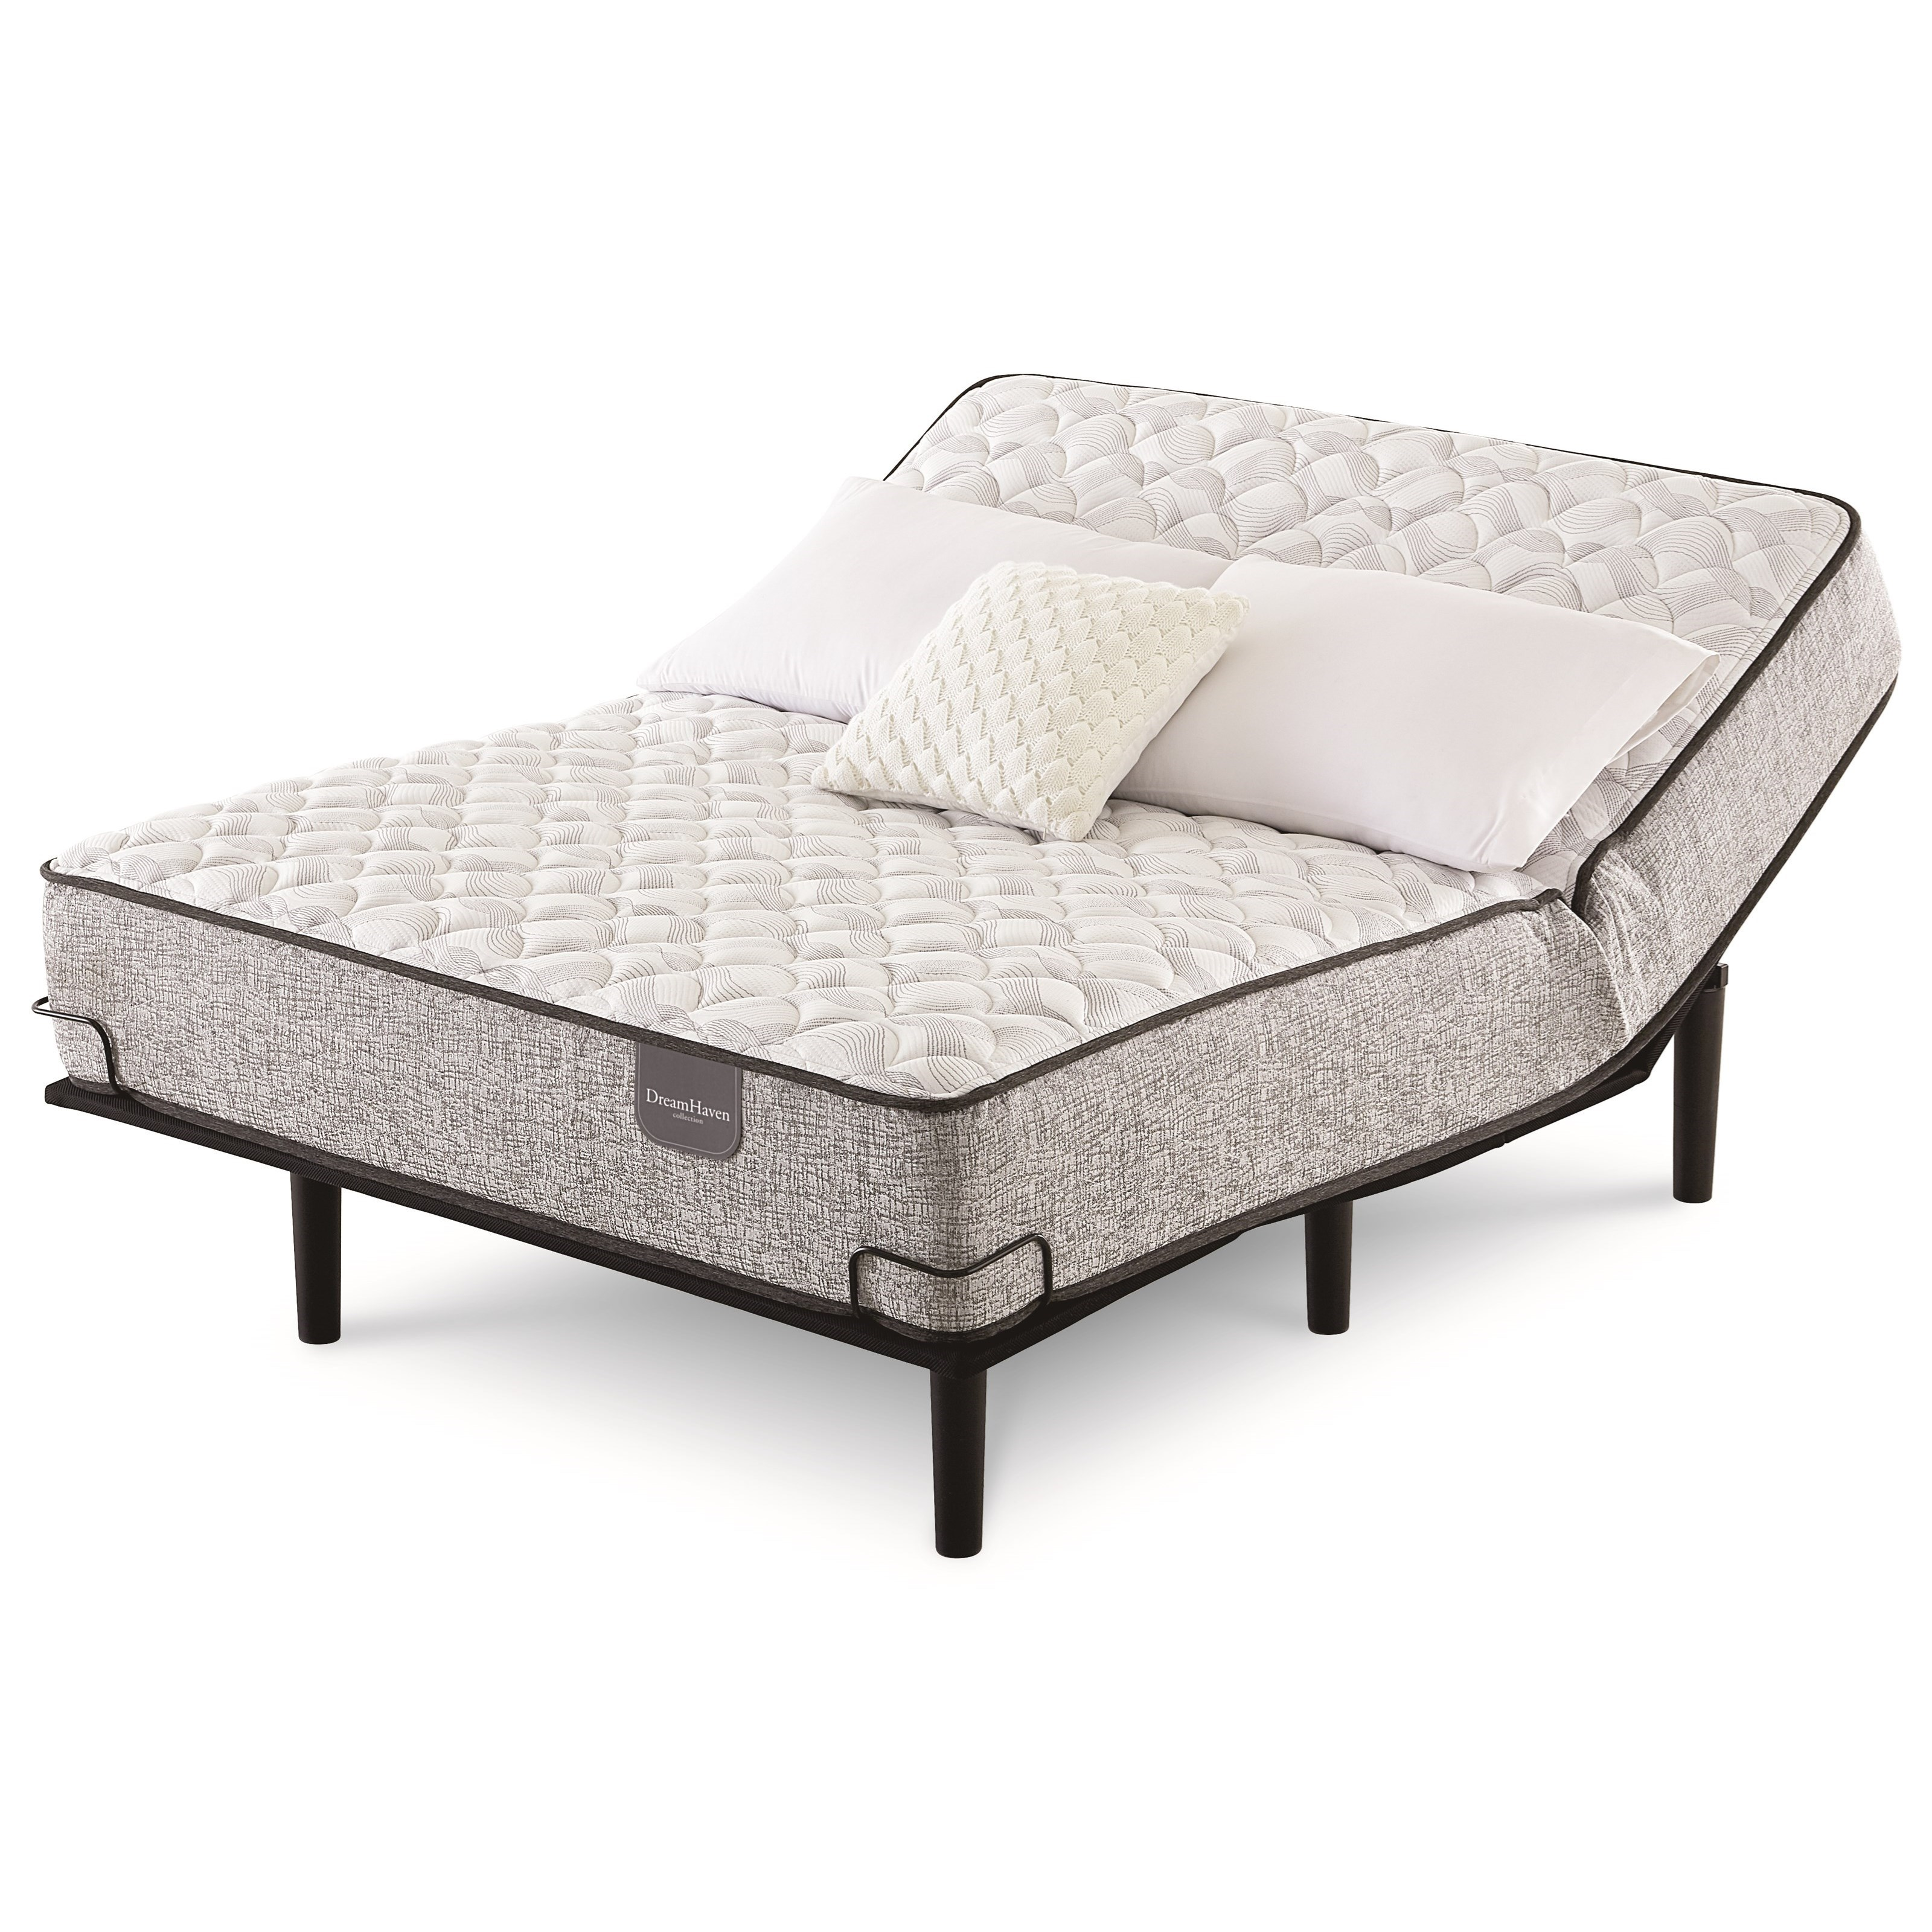 Crystal Downs Firm King Pocketed Coil Adj Set by Serta at Goffena Furniture & Mattress Center